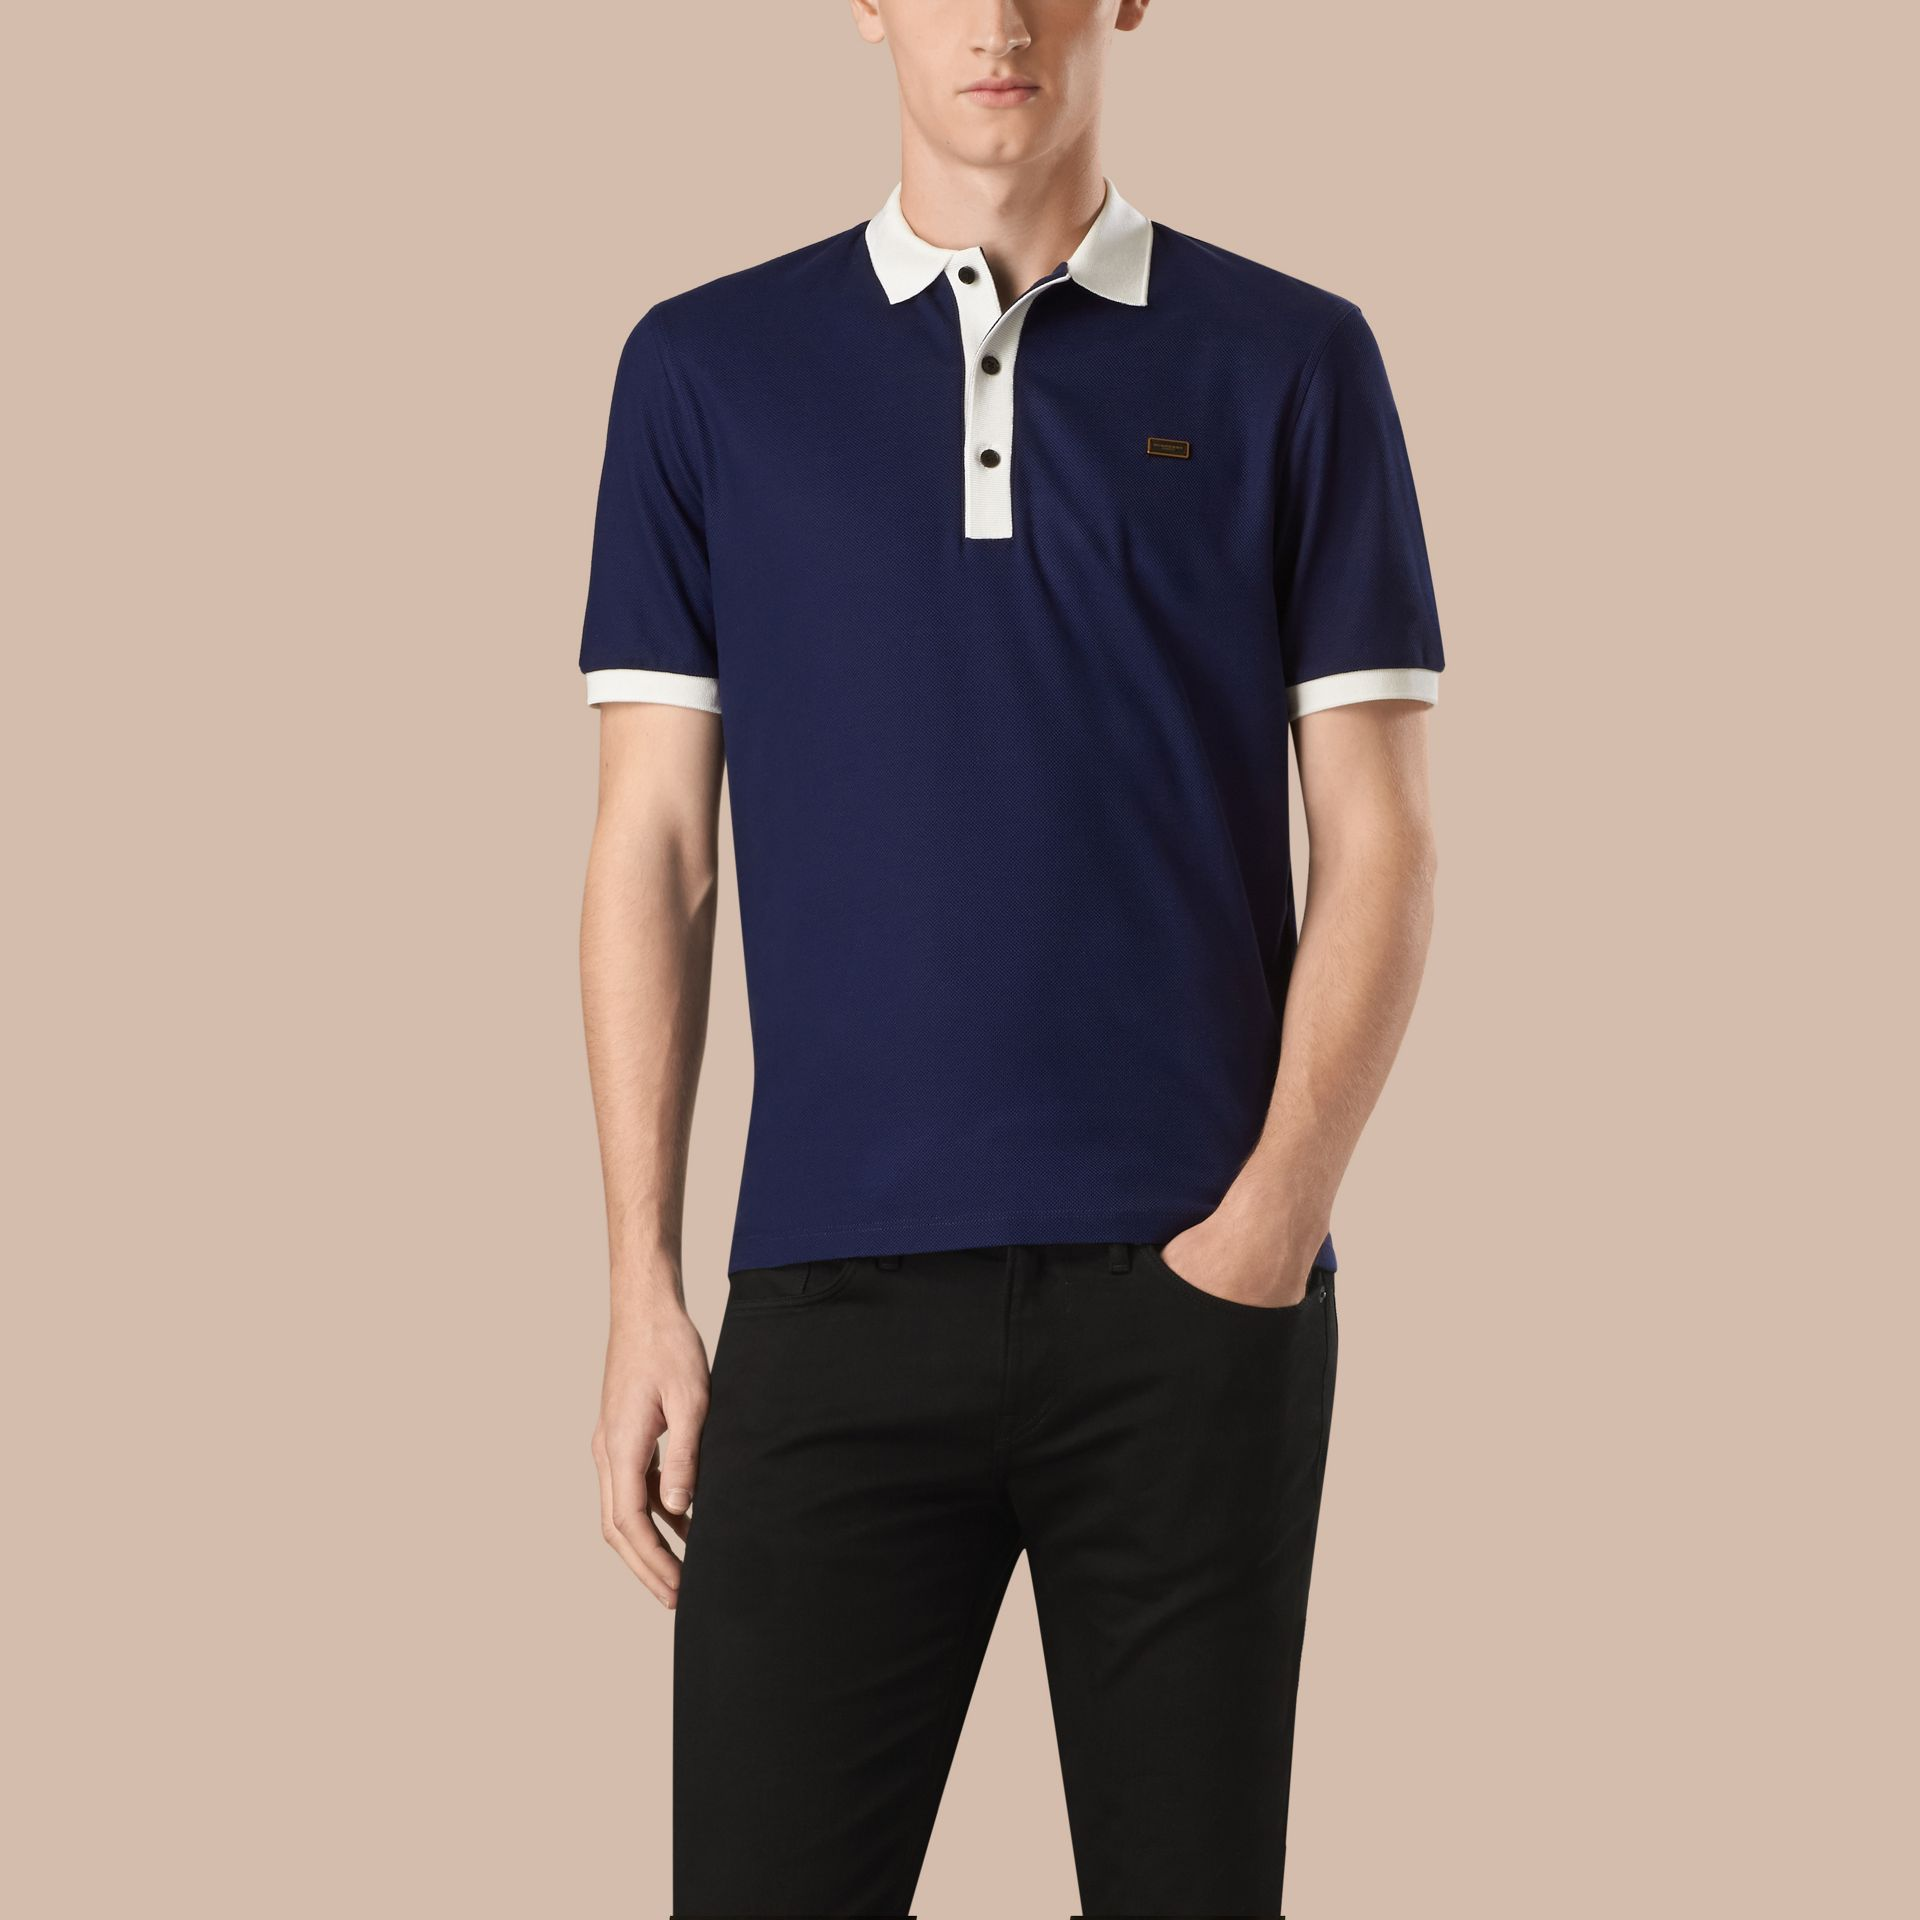 Navy blue/white Mercerised Cotton Piqué Polo Shirt Navy Blue/white - gallery image 1